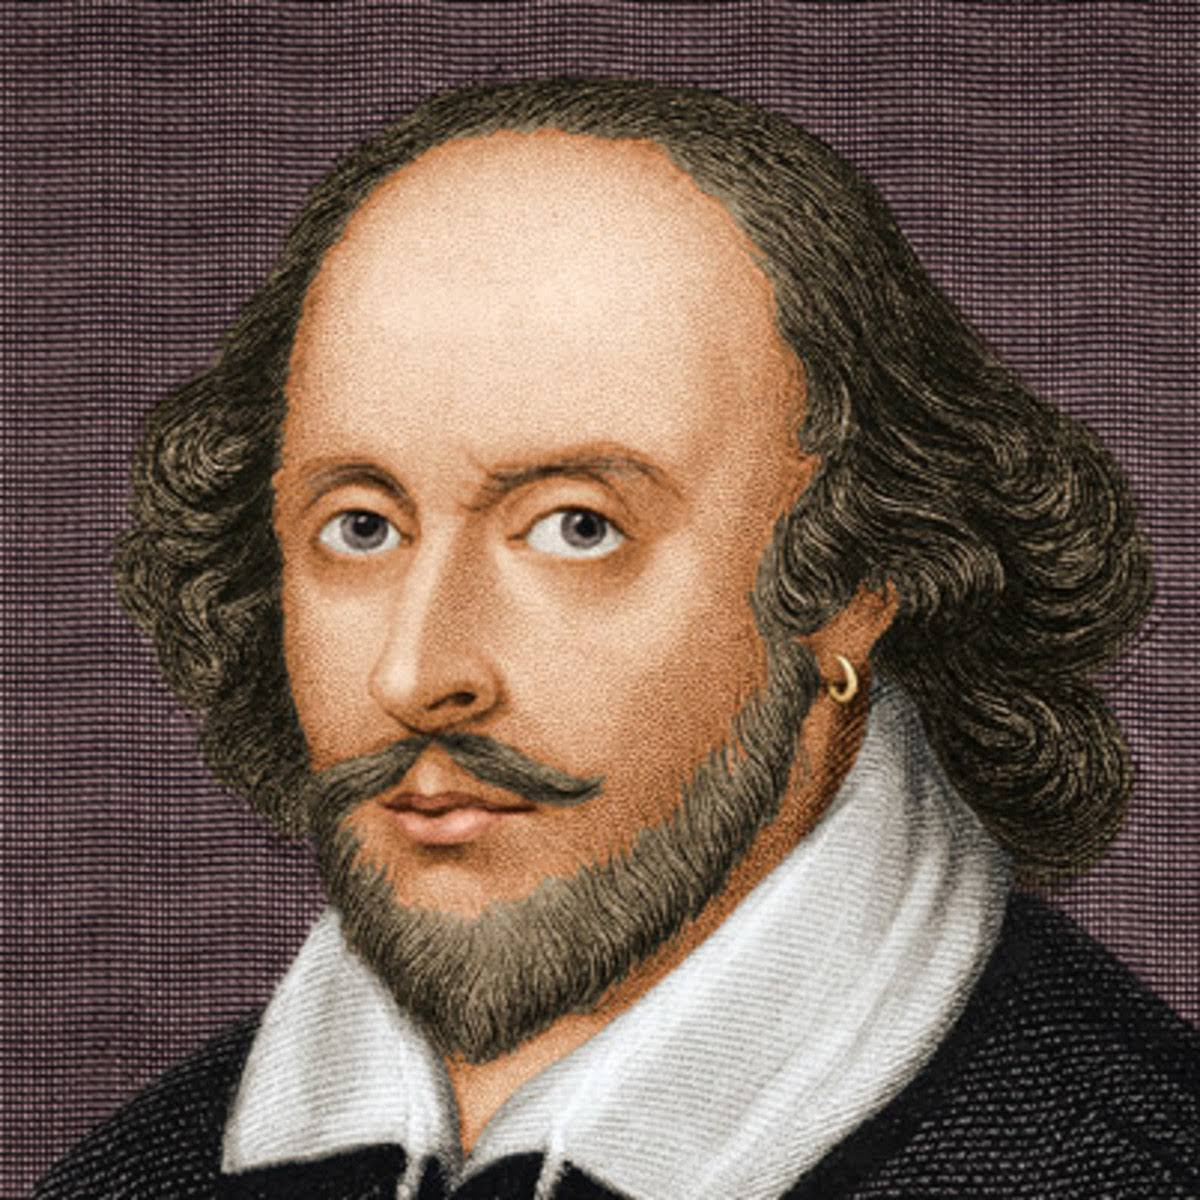 a photo of William Shakespeare